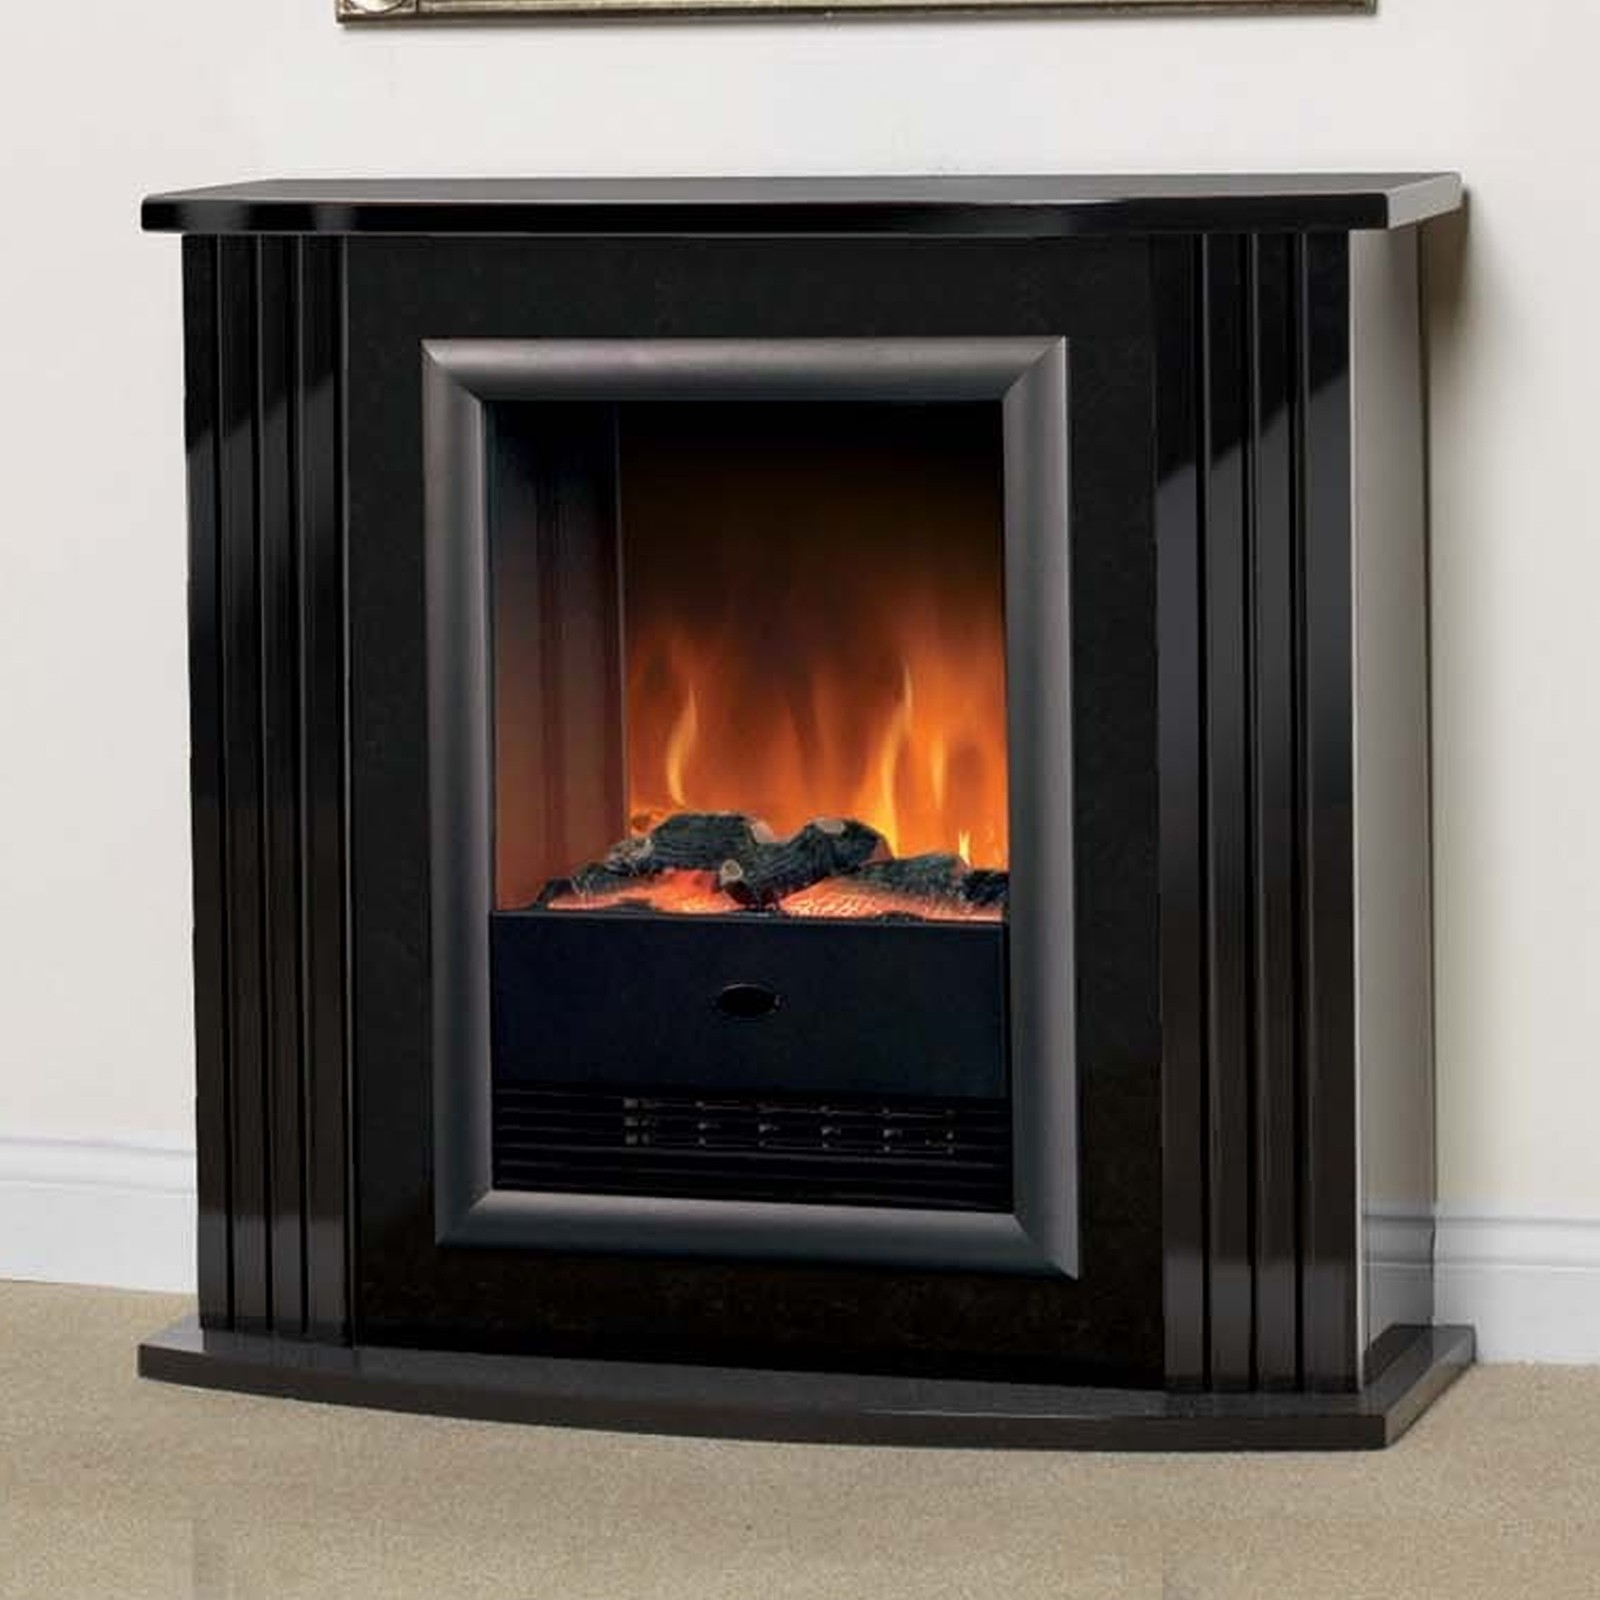 barley club dimplex product fireplaces fireplace electric finished wyatt the brown firebox